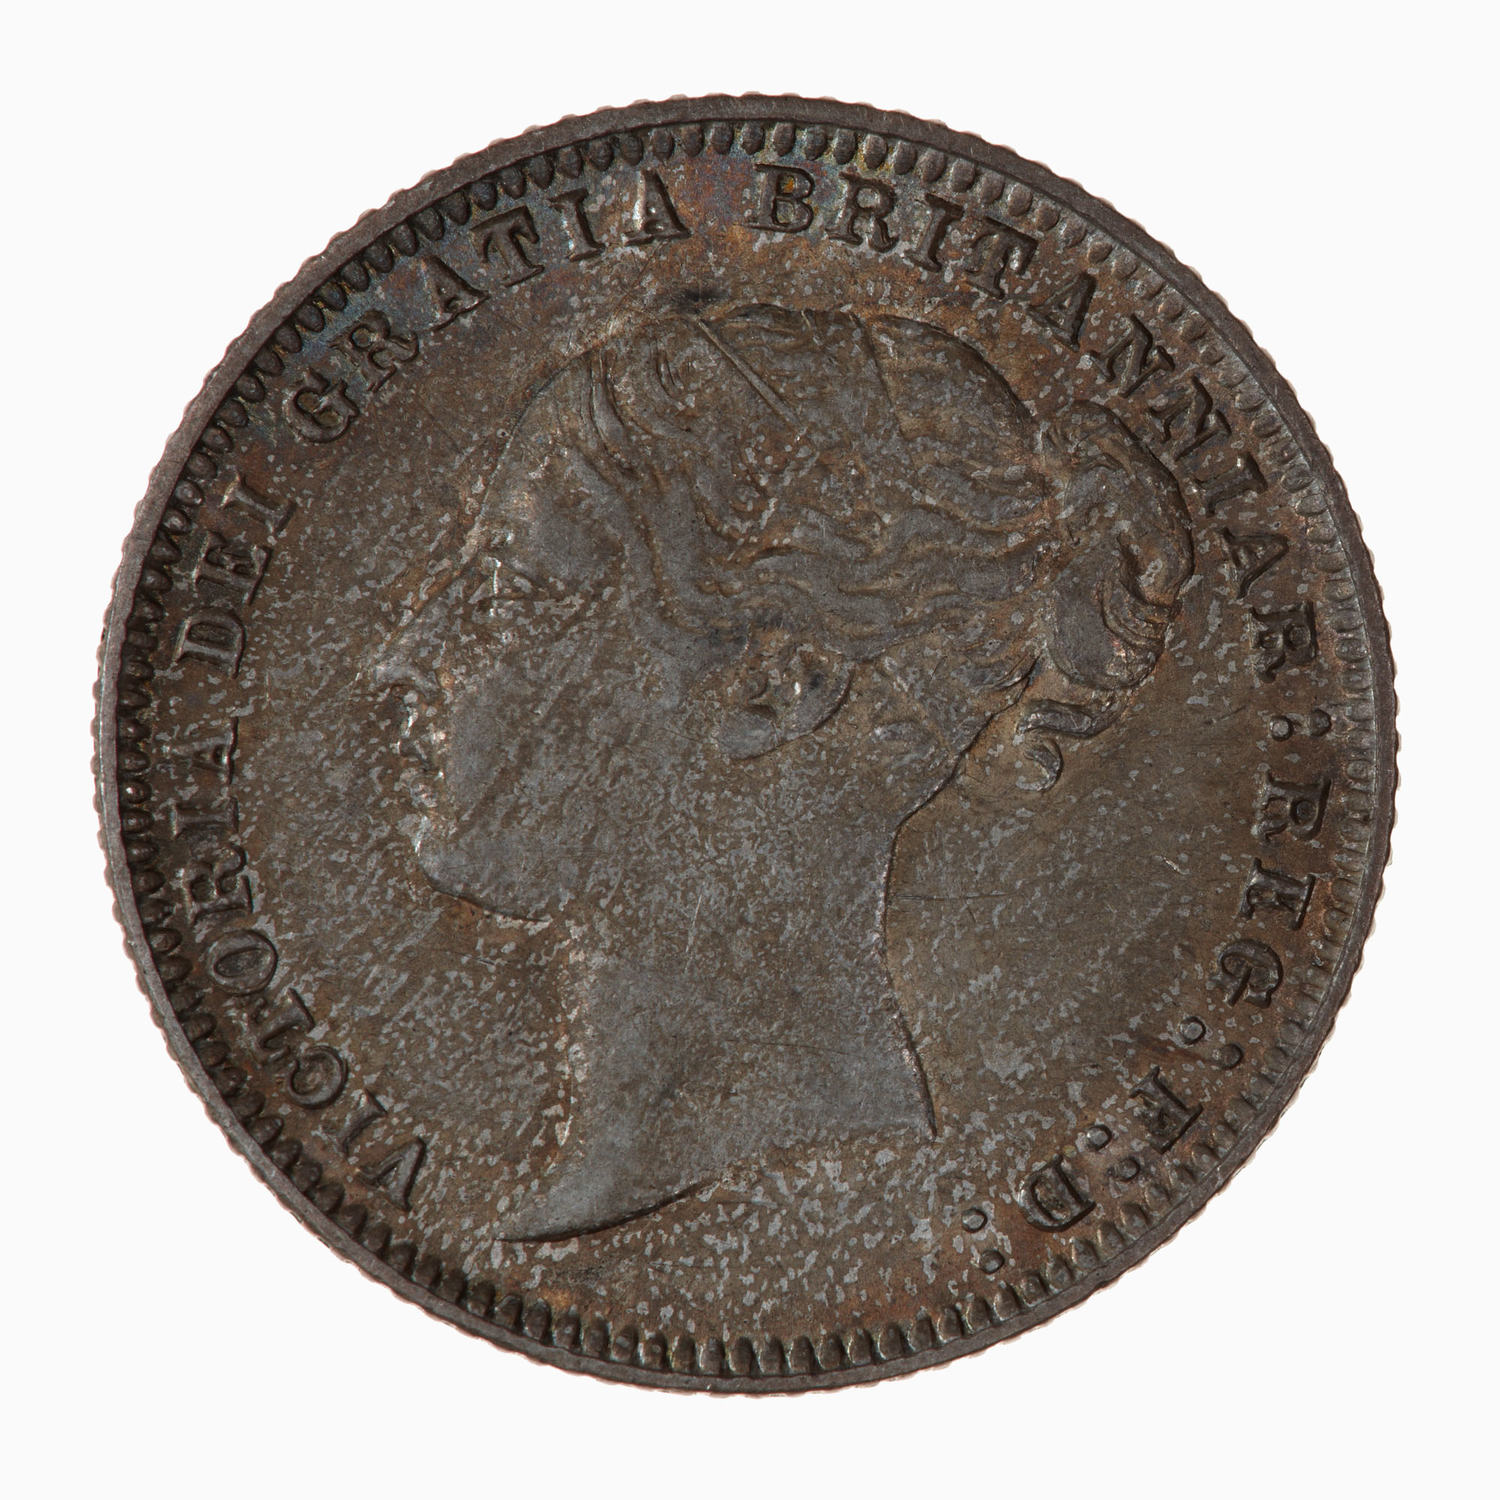 Sixpence 1877: Photo Coin - Sixpence, Queen Victoria, Great Britain, 1877